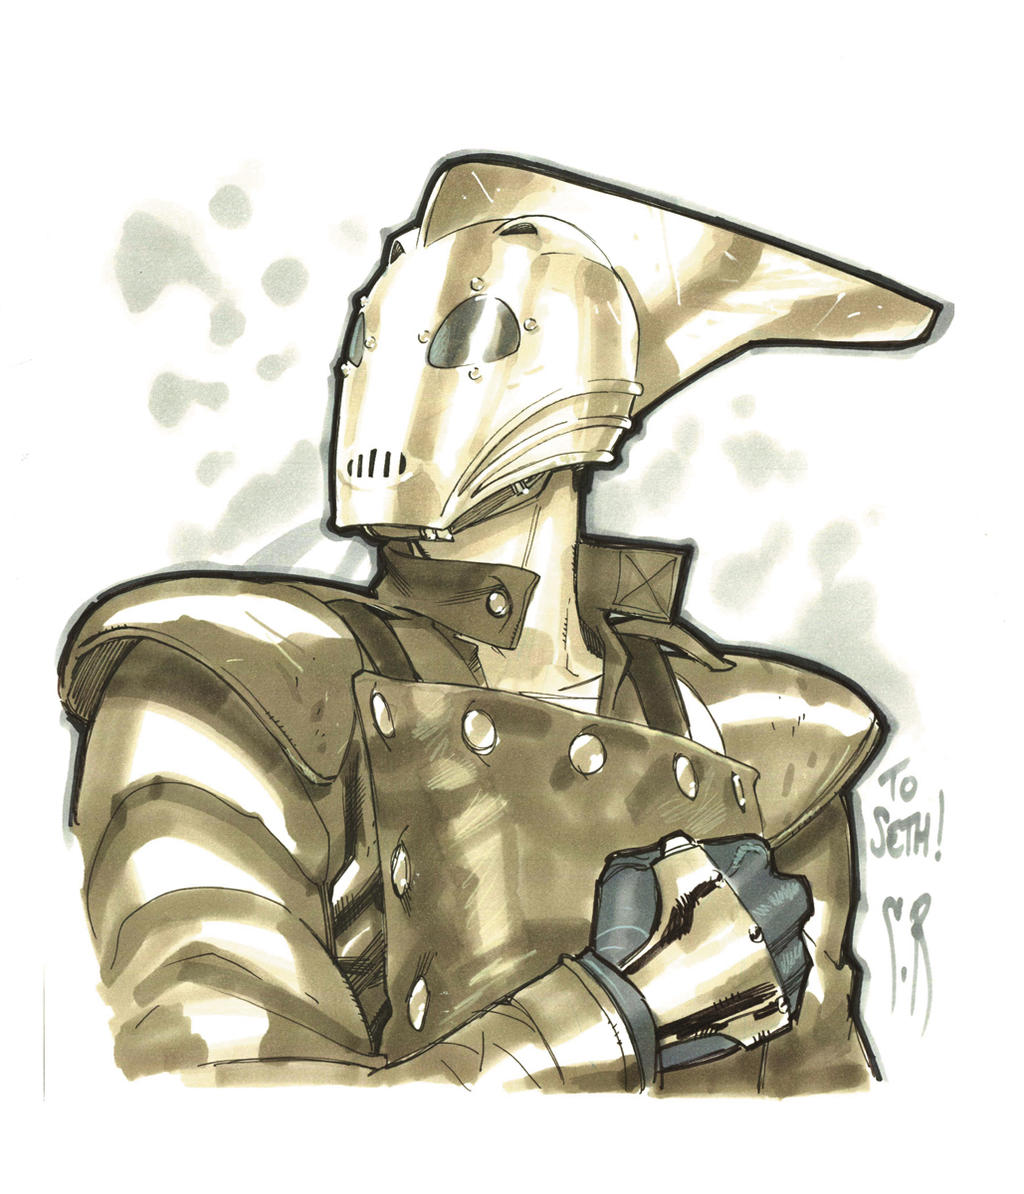 Rocketeer head sketch by StephaneRoux